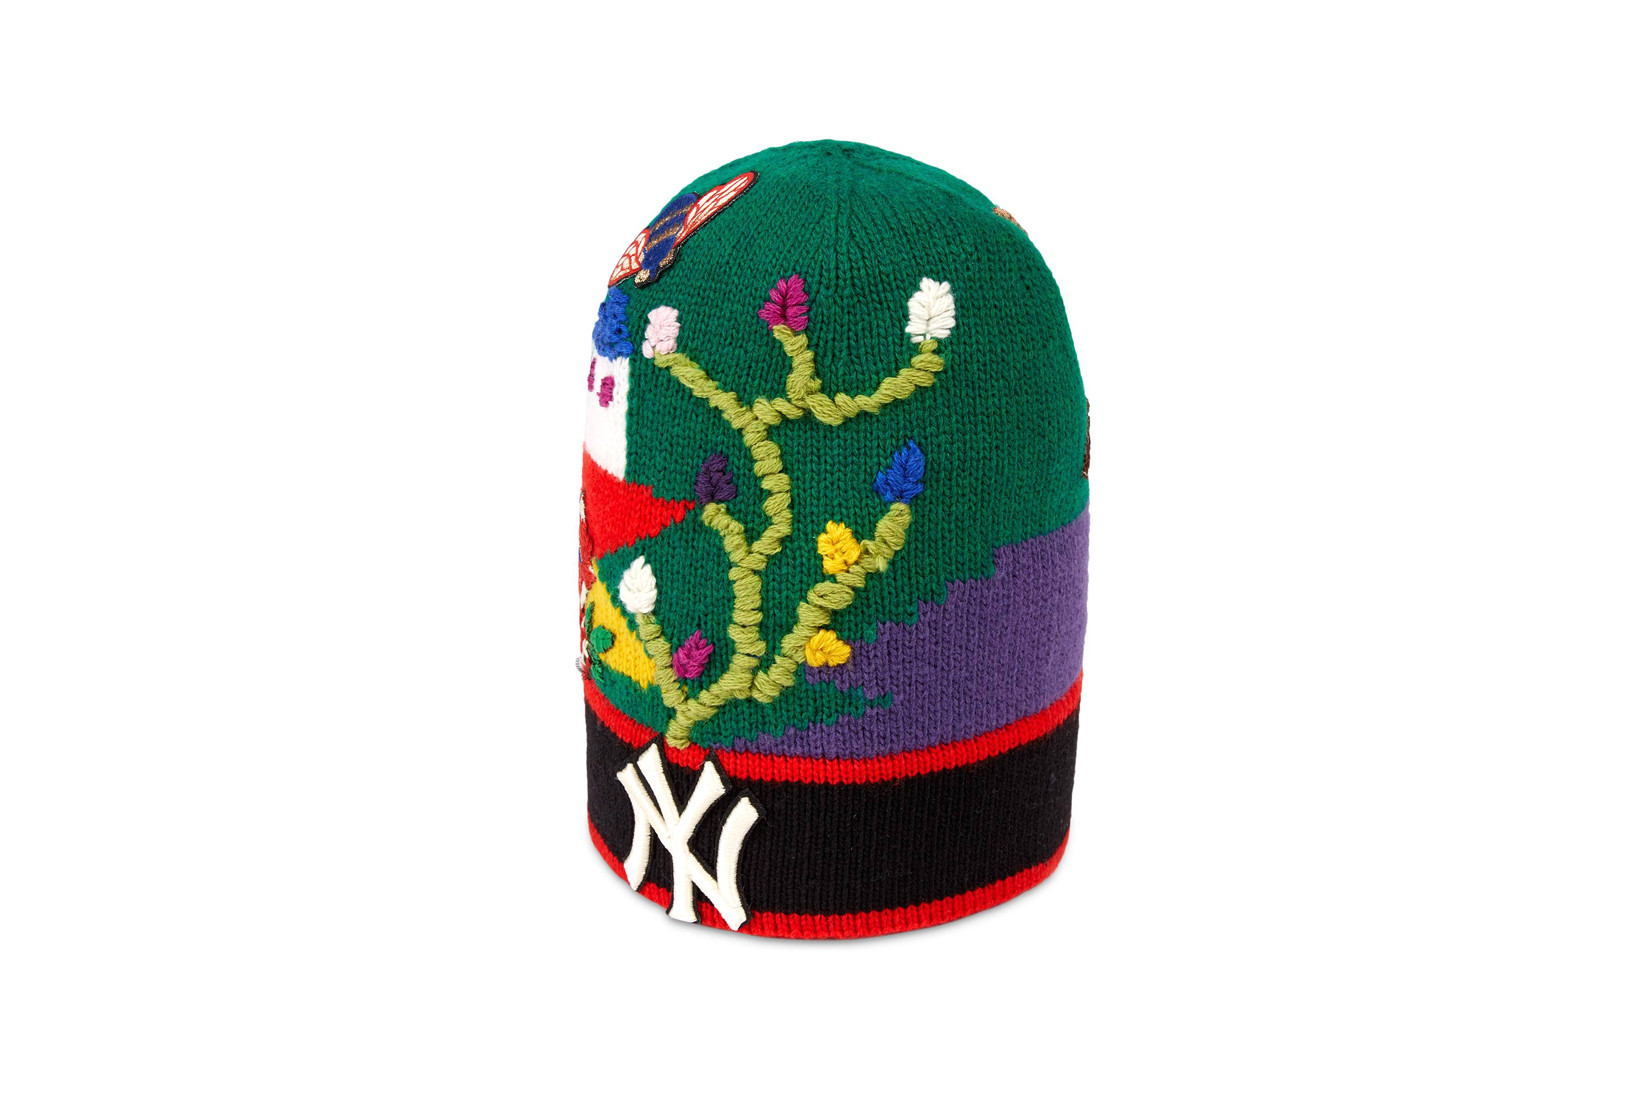 cbf0a0791c9 Gucci Wins Again With This NY Yankees Pre-Fall Accessories Capsule